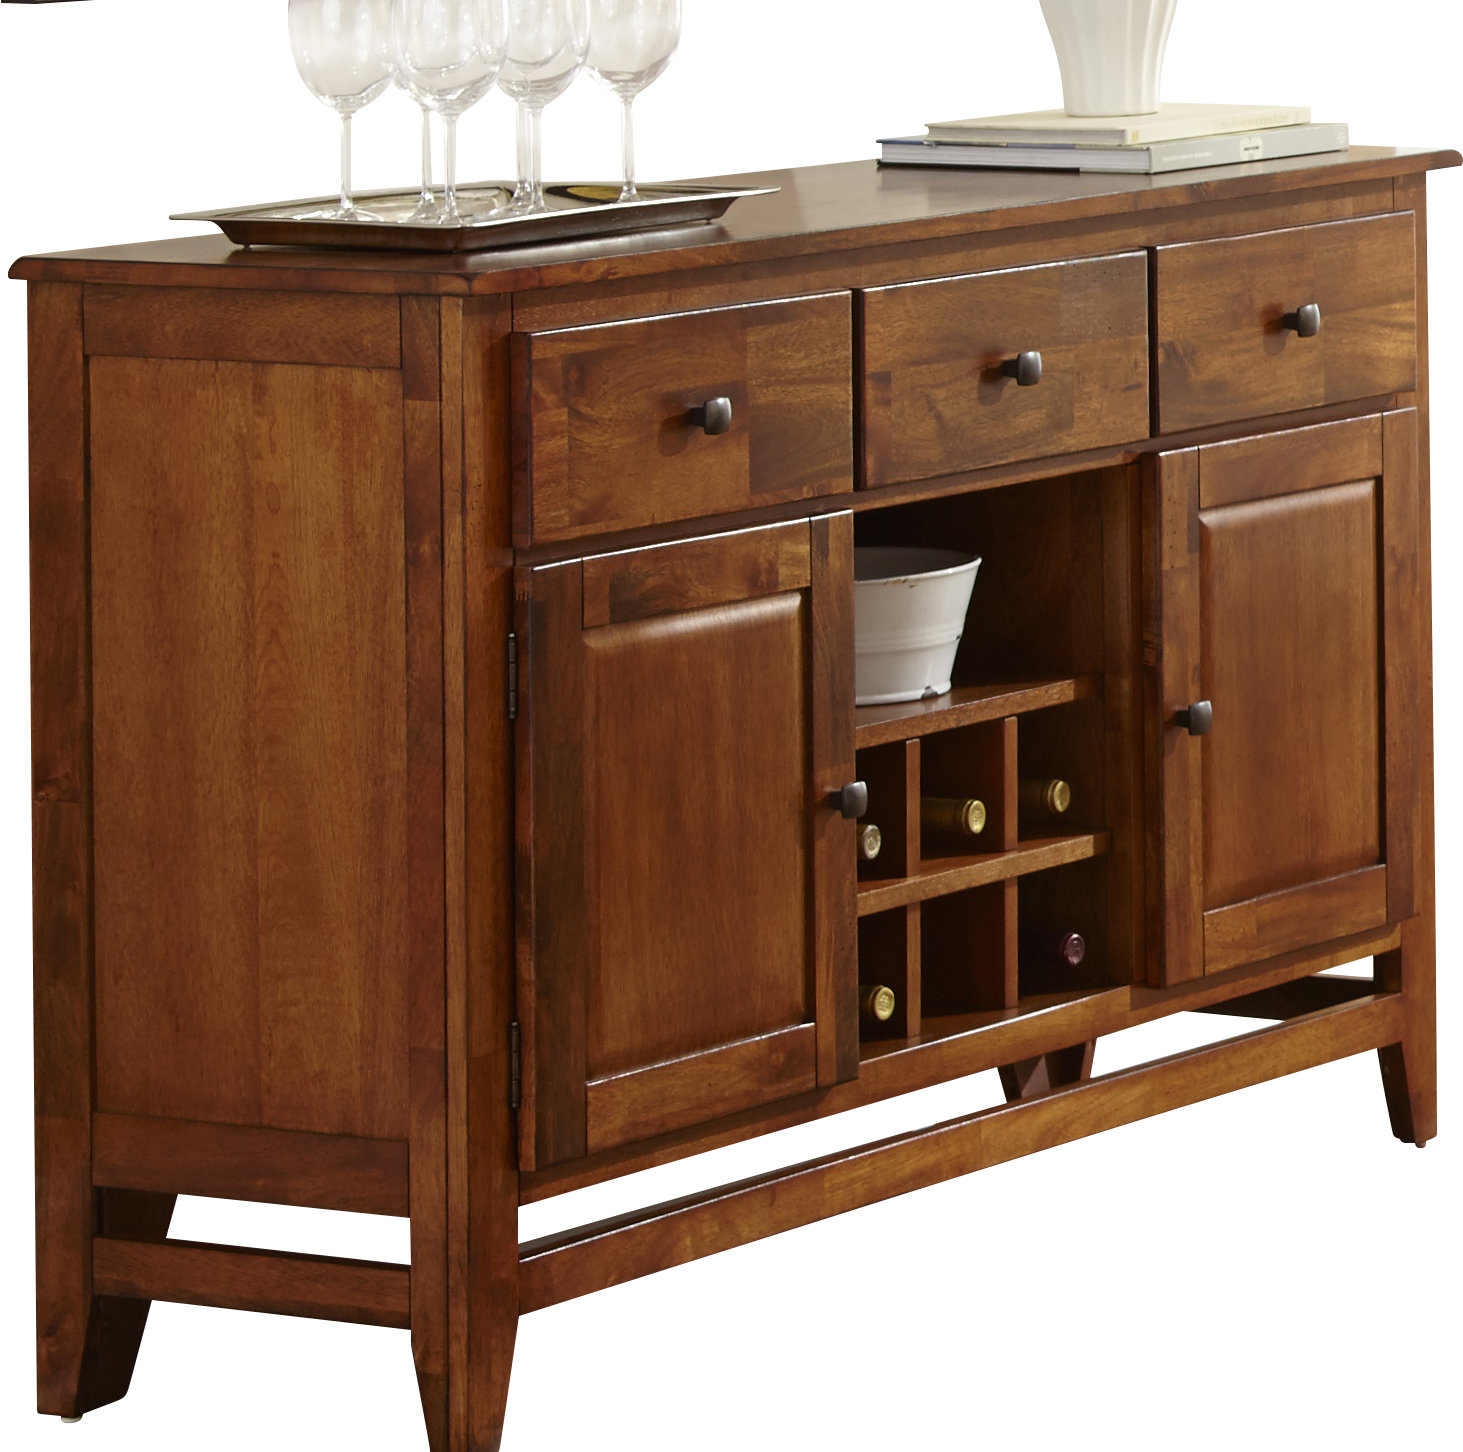 Chiricahua Sideboard Regarding Most Up To Date Nashoba Sideboards (View 9 of 20)